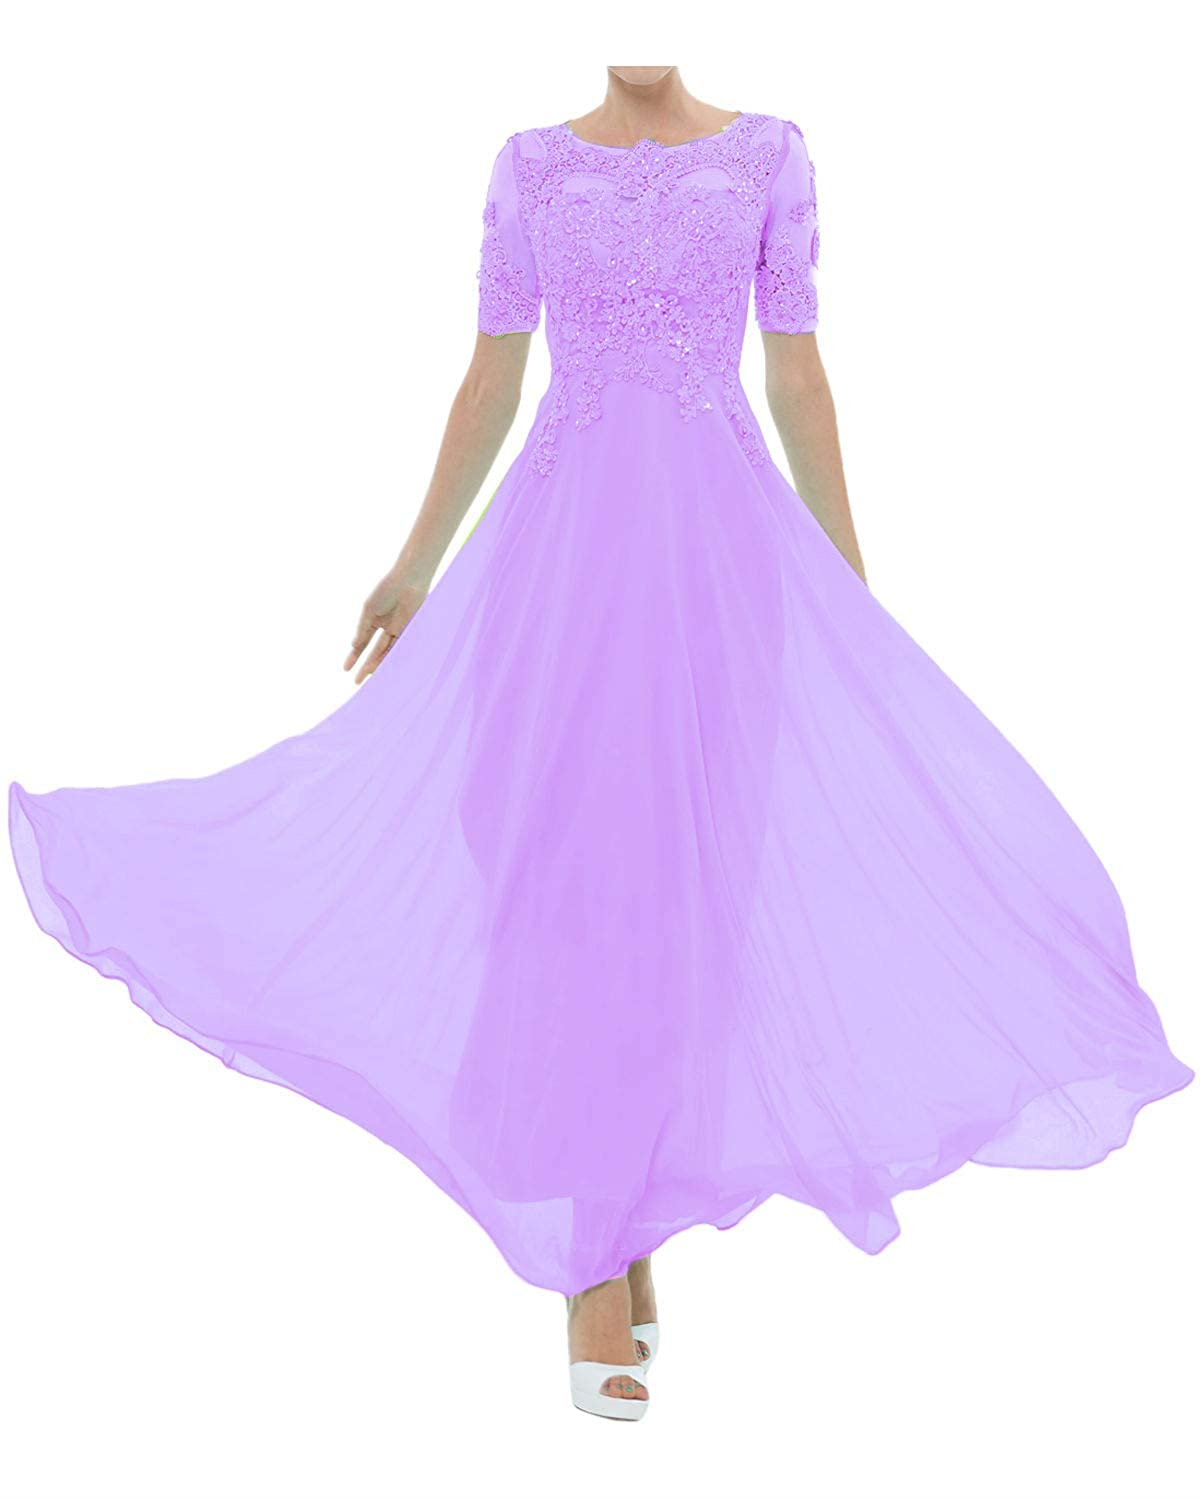 DINGZAN Ankle Length Chiffon Applique Mother of The Bride Dress with Short Sleeves